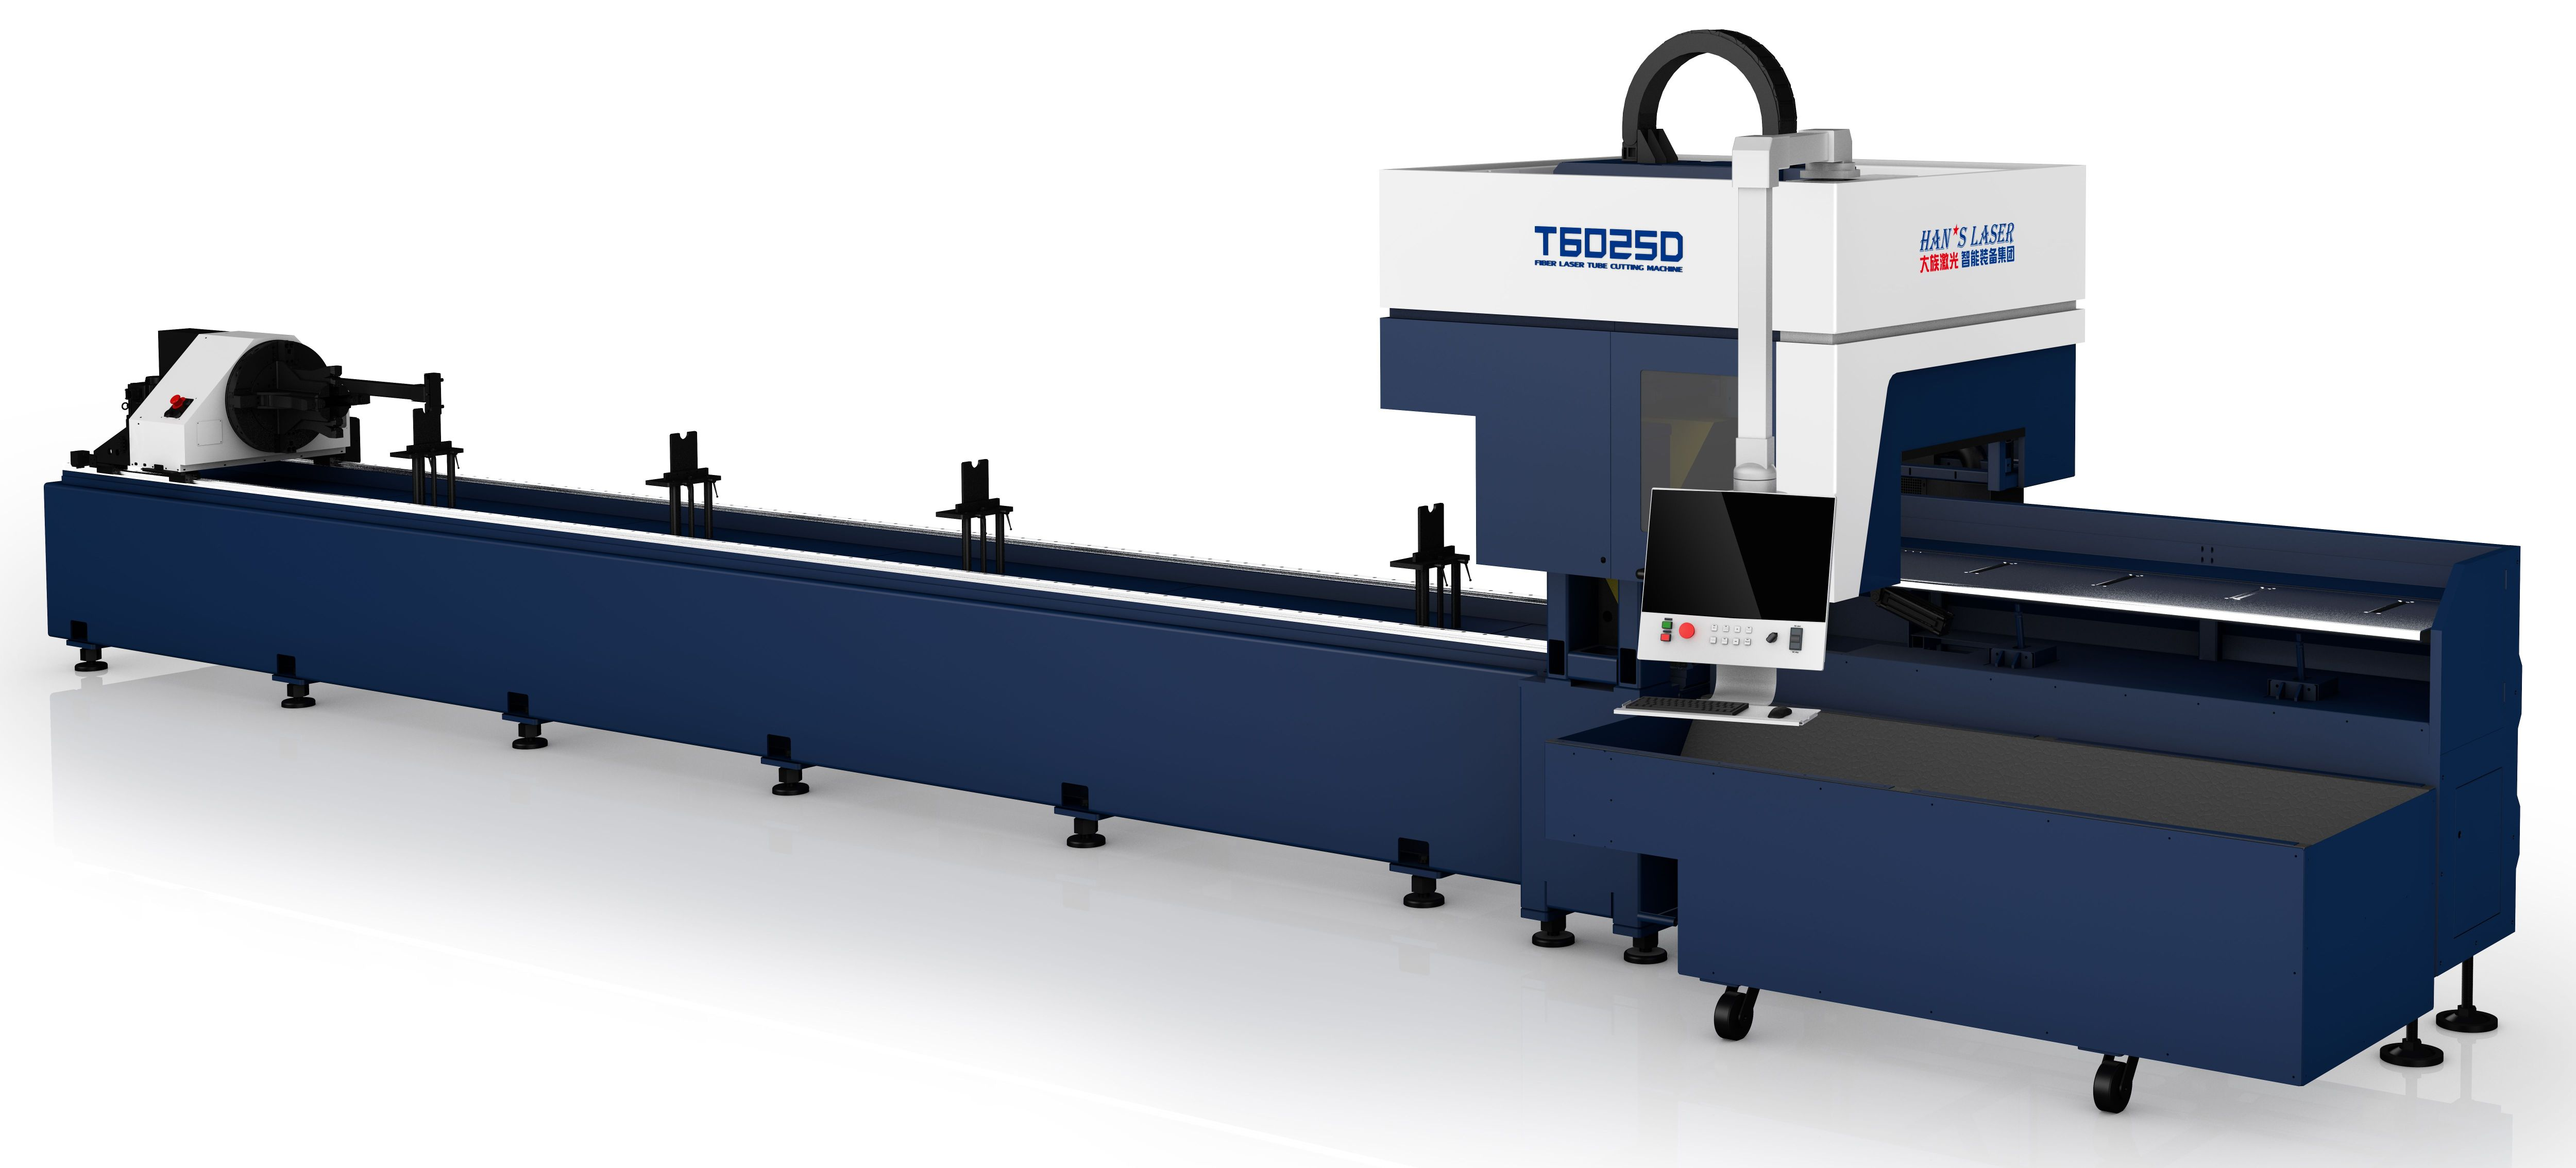 T6025D Laser Tube Cutting Machine